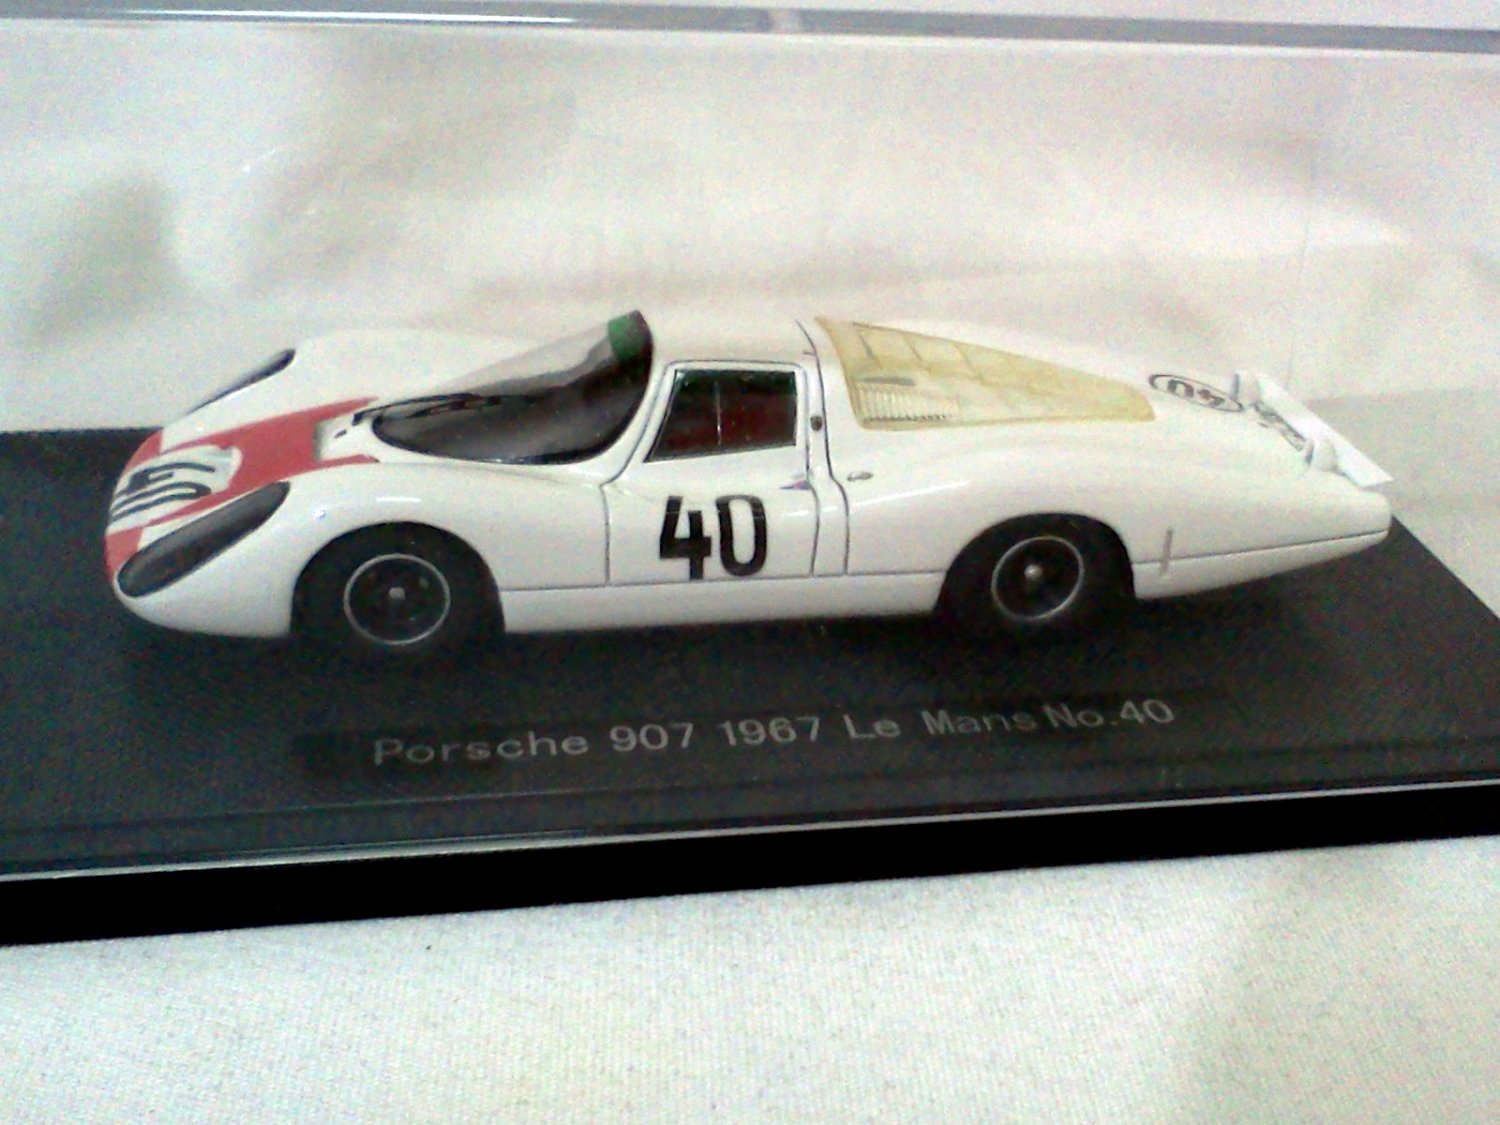 Porsche 907 1967 Le Mans #40 White/Red 1/43 Resin Model Car